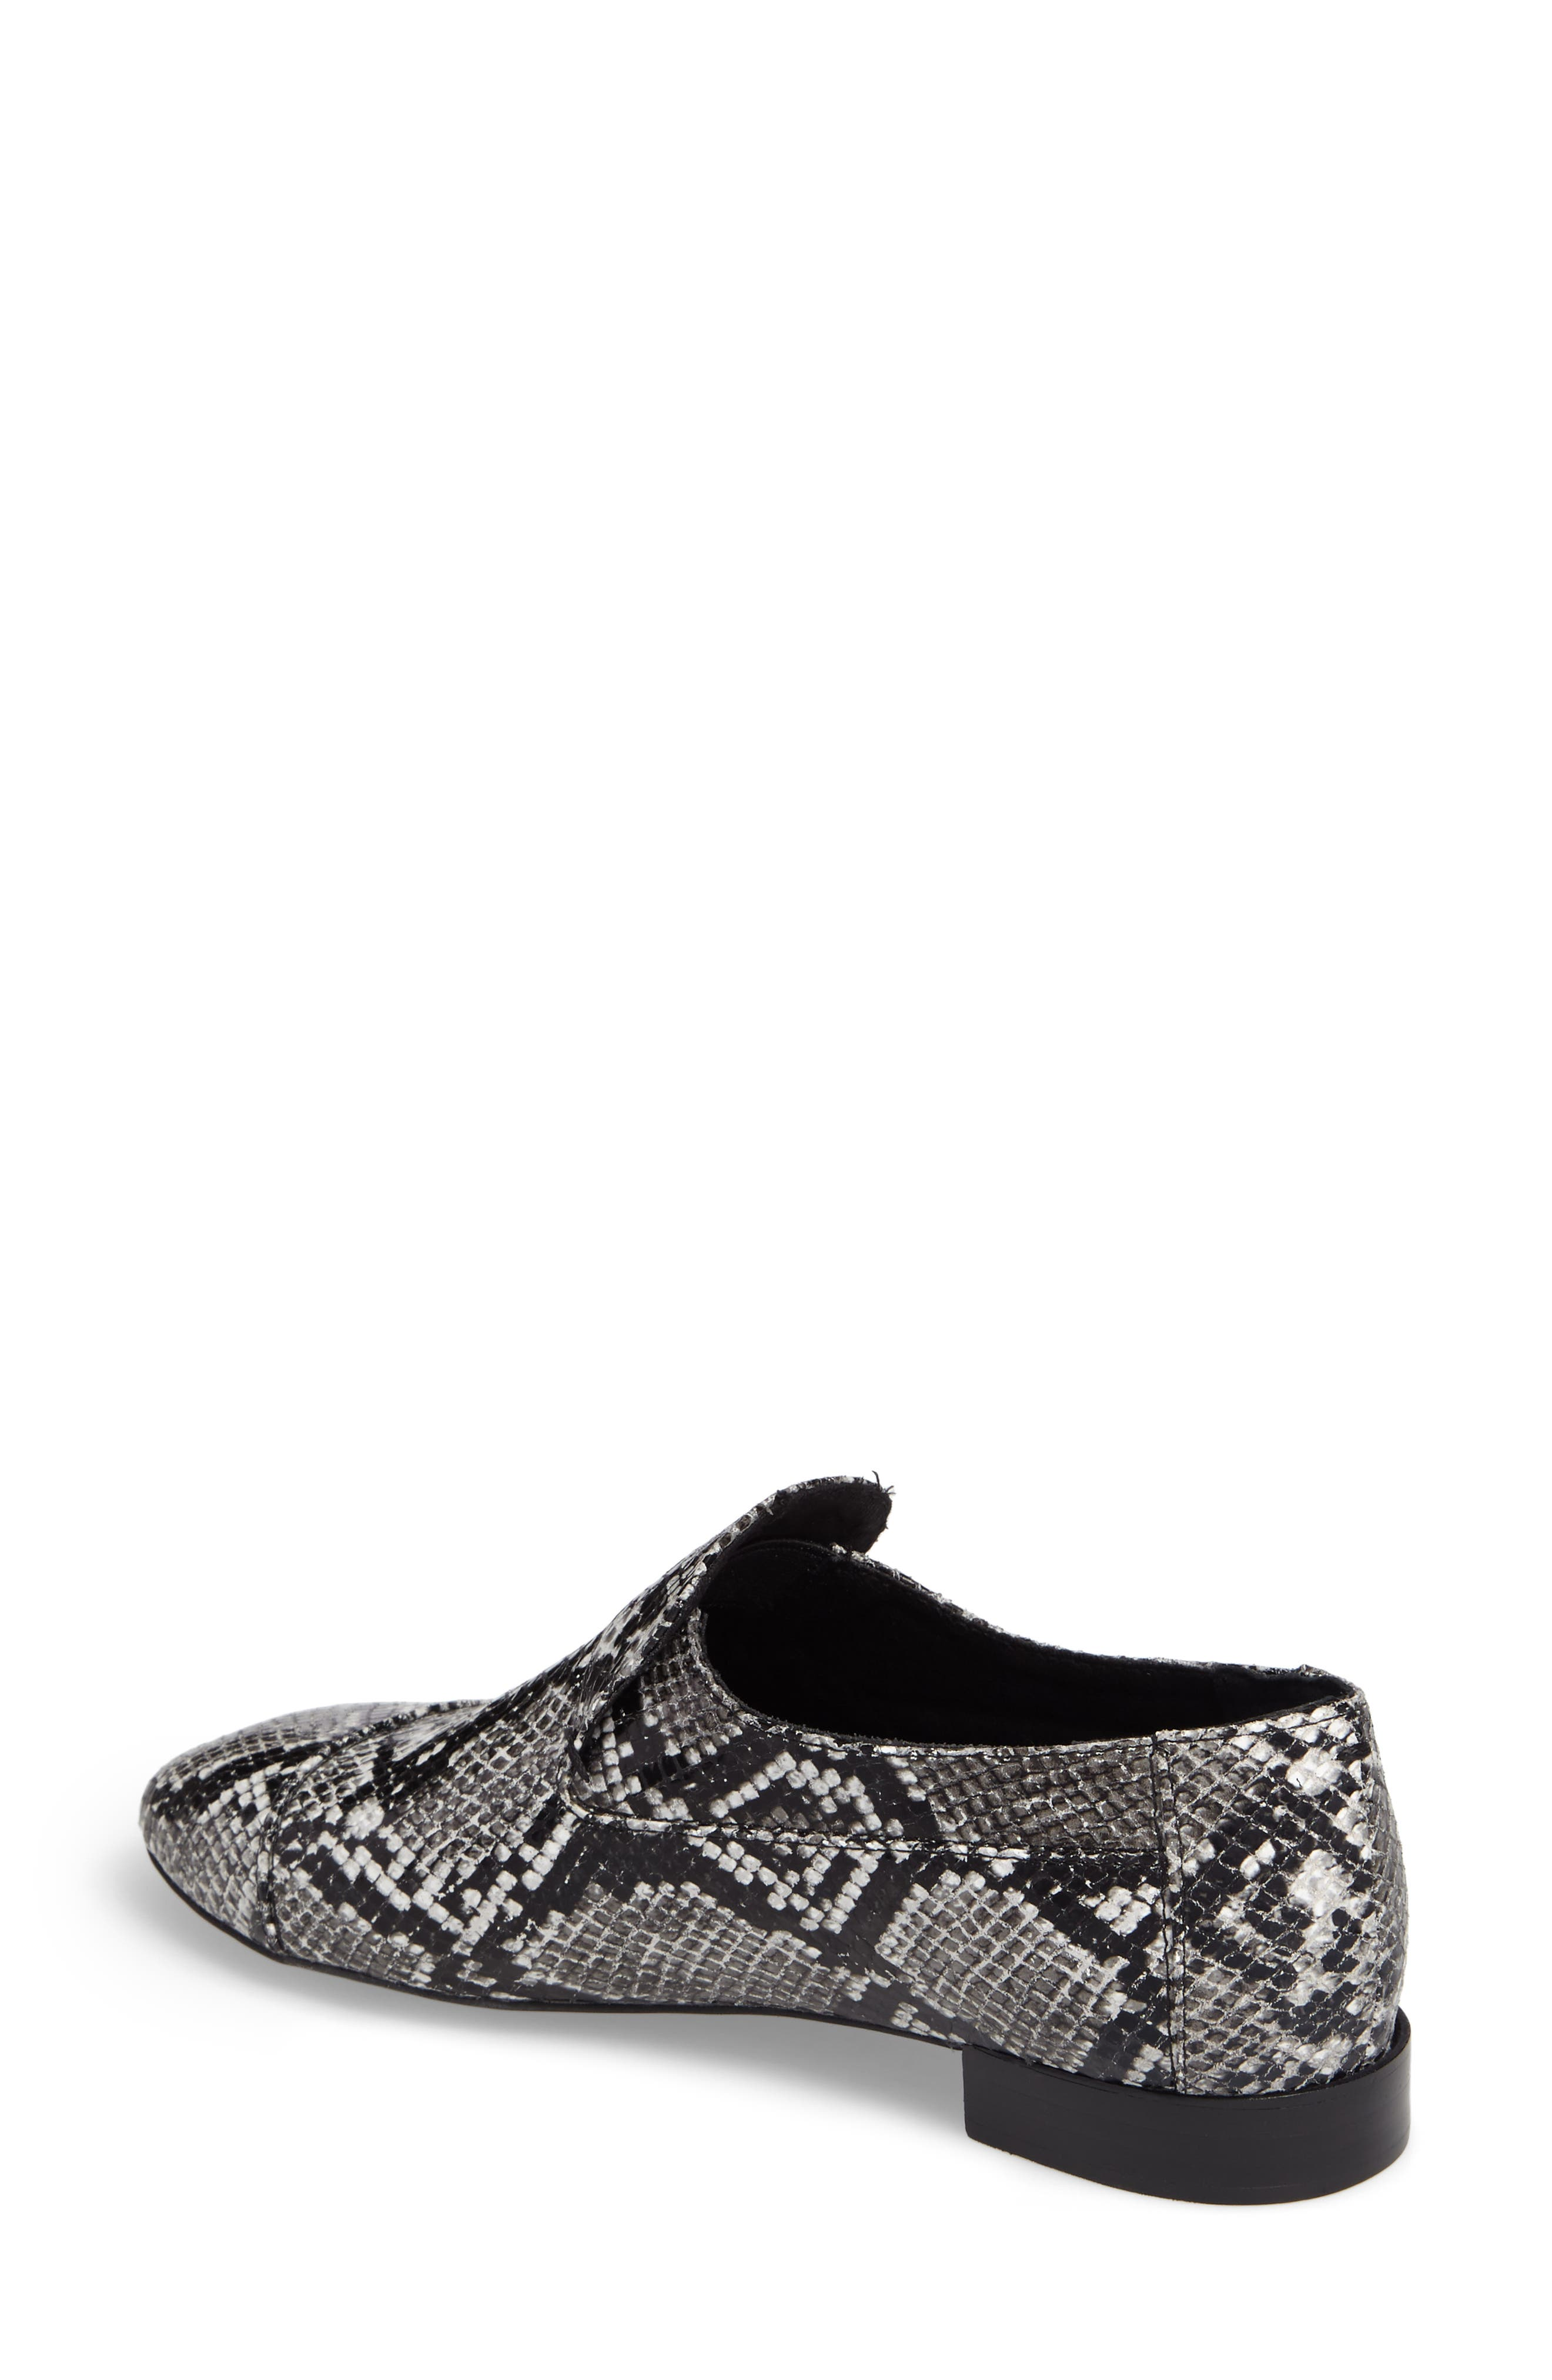 Alternate Image 2  - Jeffrey Campbell 'Bryant' Cap Toe Loafer (Women)